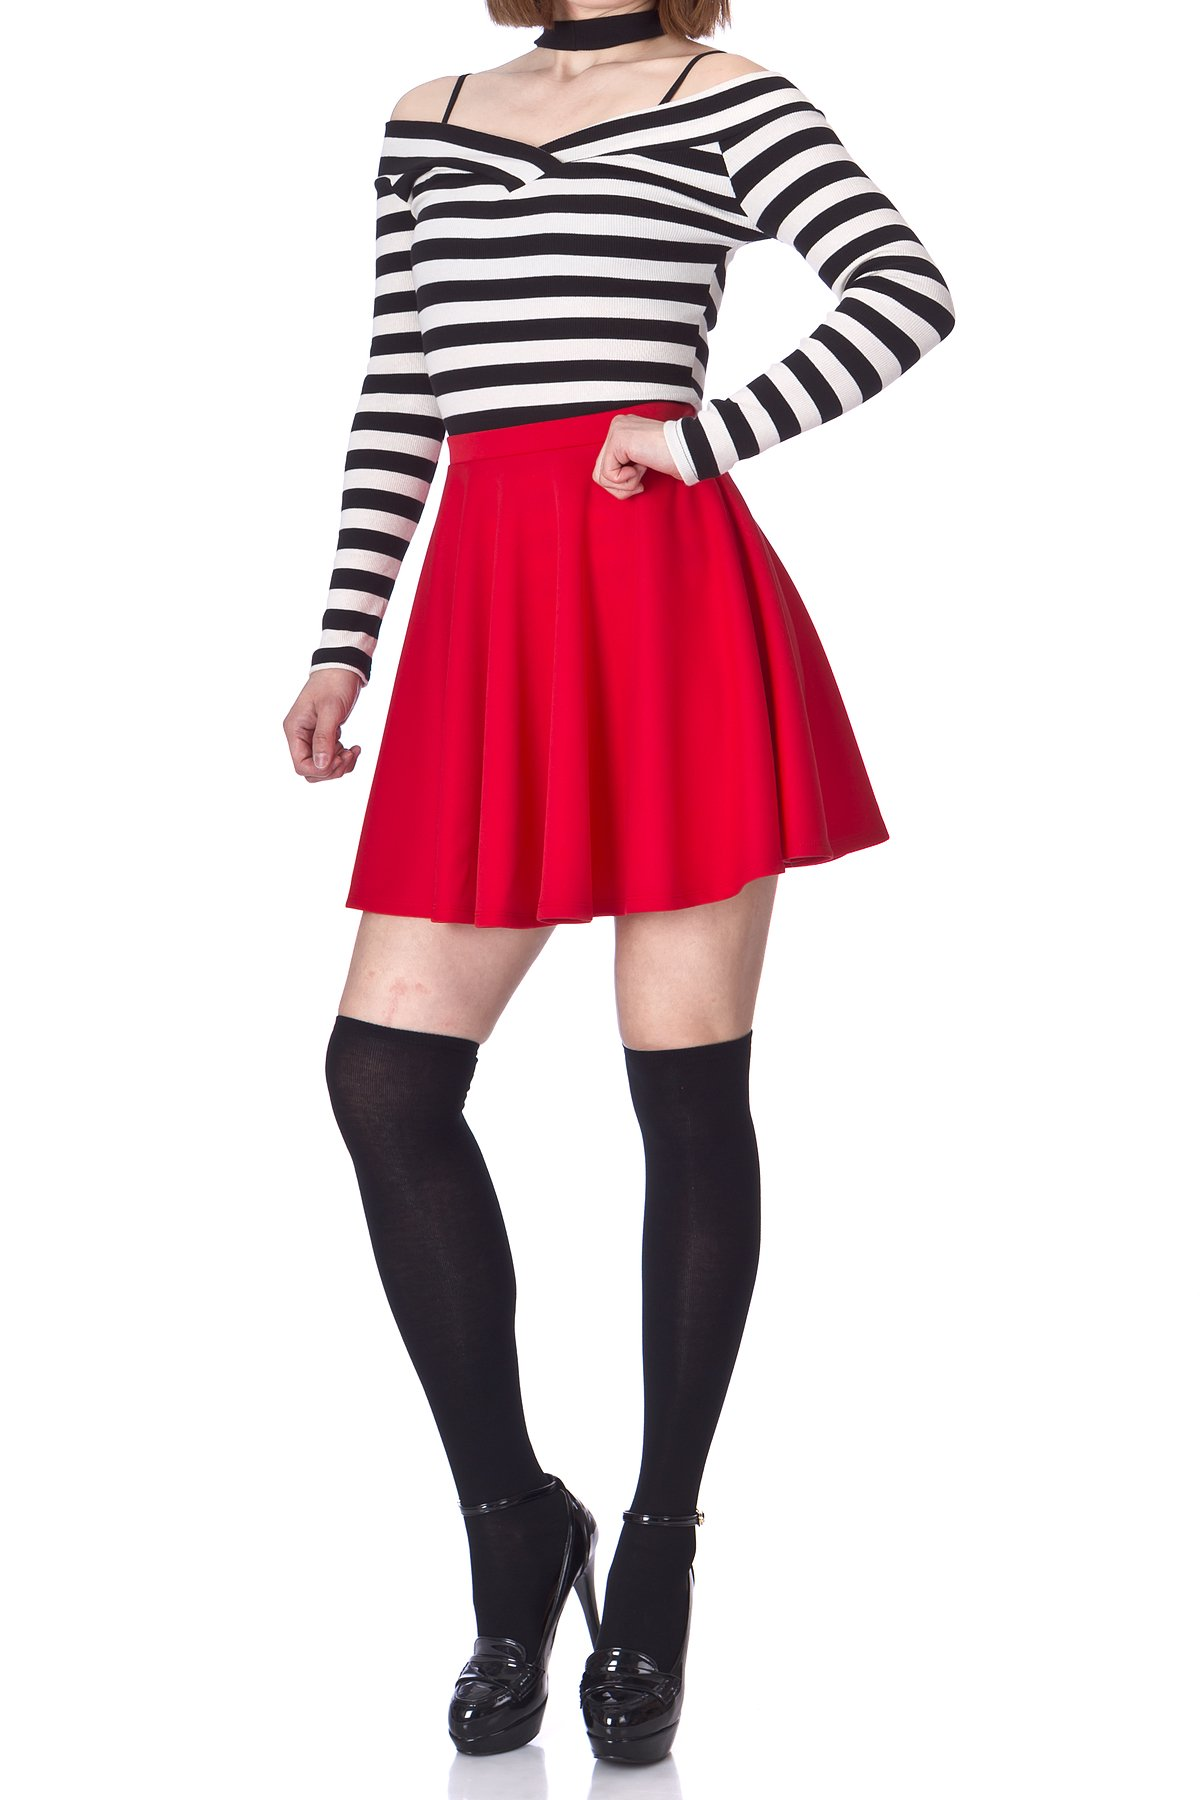 Flouncy High Waist A line Full Flared Circle Swing Dance Party Casual Skater Short Mini Skirt Red 04